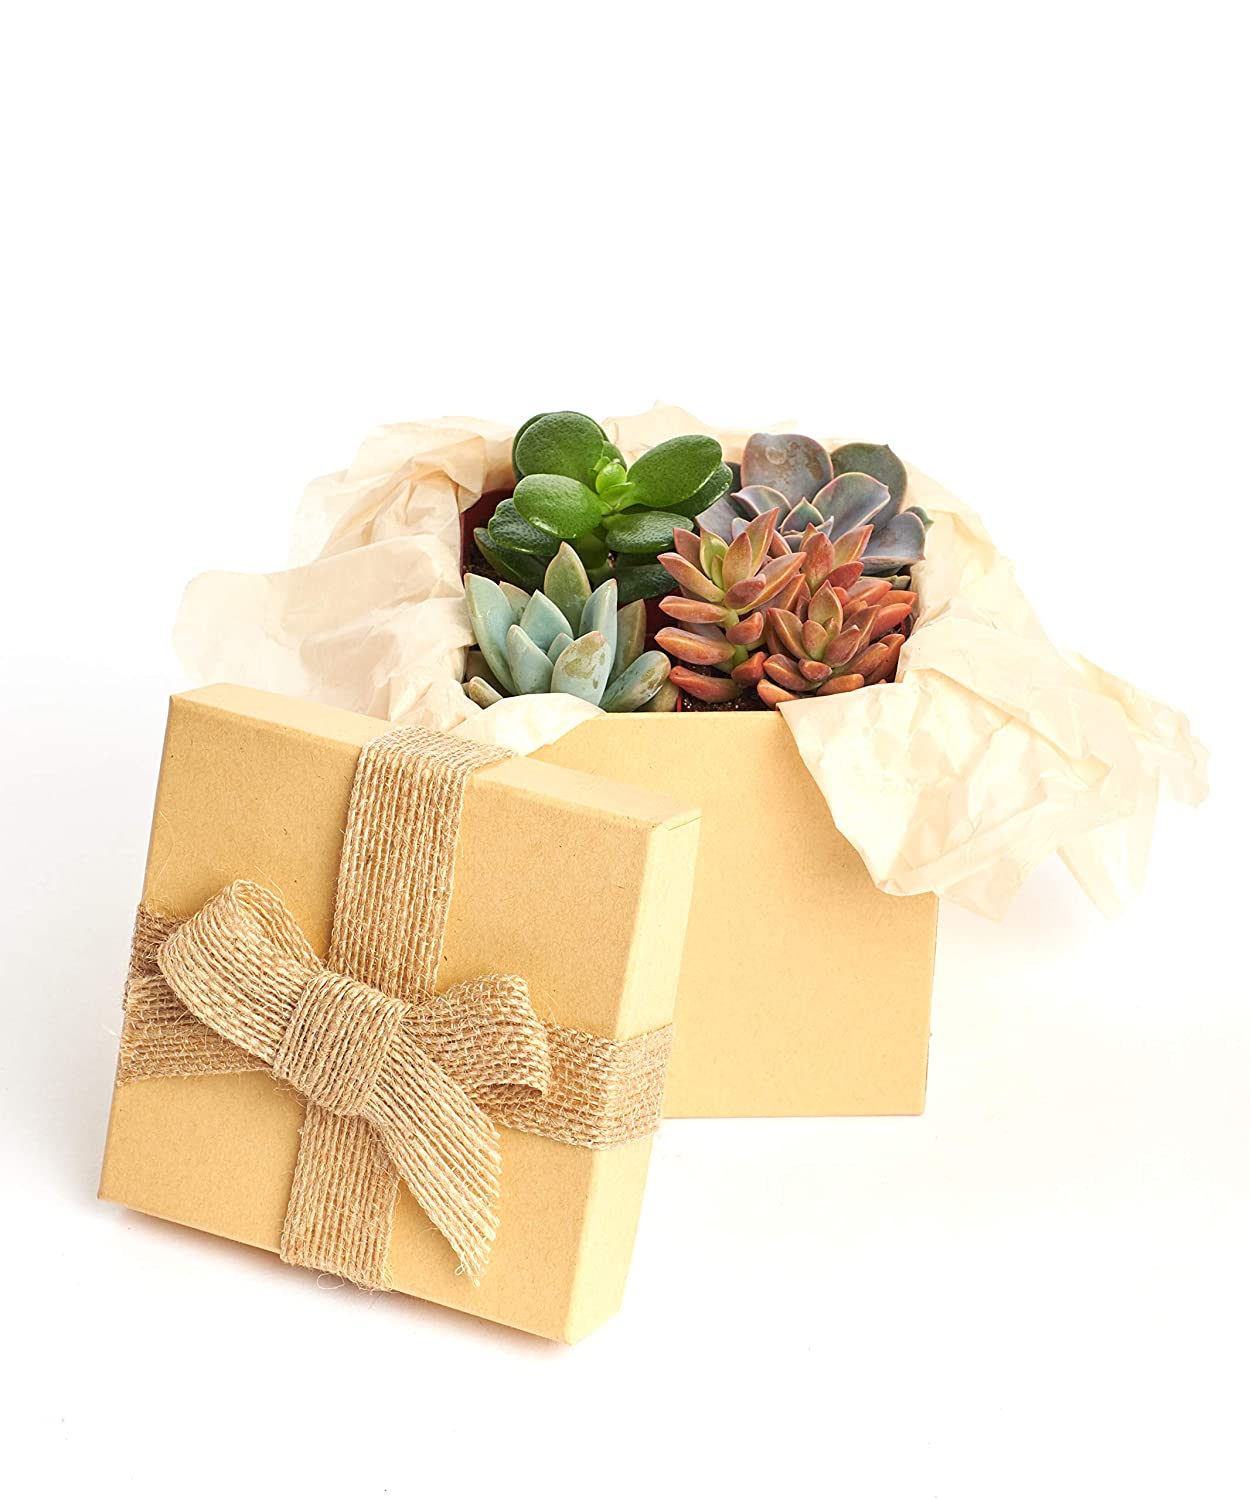 Hand Selected Variety Pack of Mini Succulents Collection of 12 in 2 pots Premium Pastel Collection of LiveSucculent Plants in Gift Box Shop Succulents